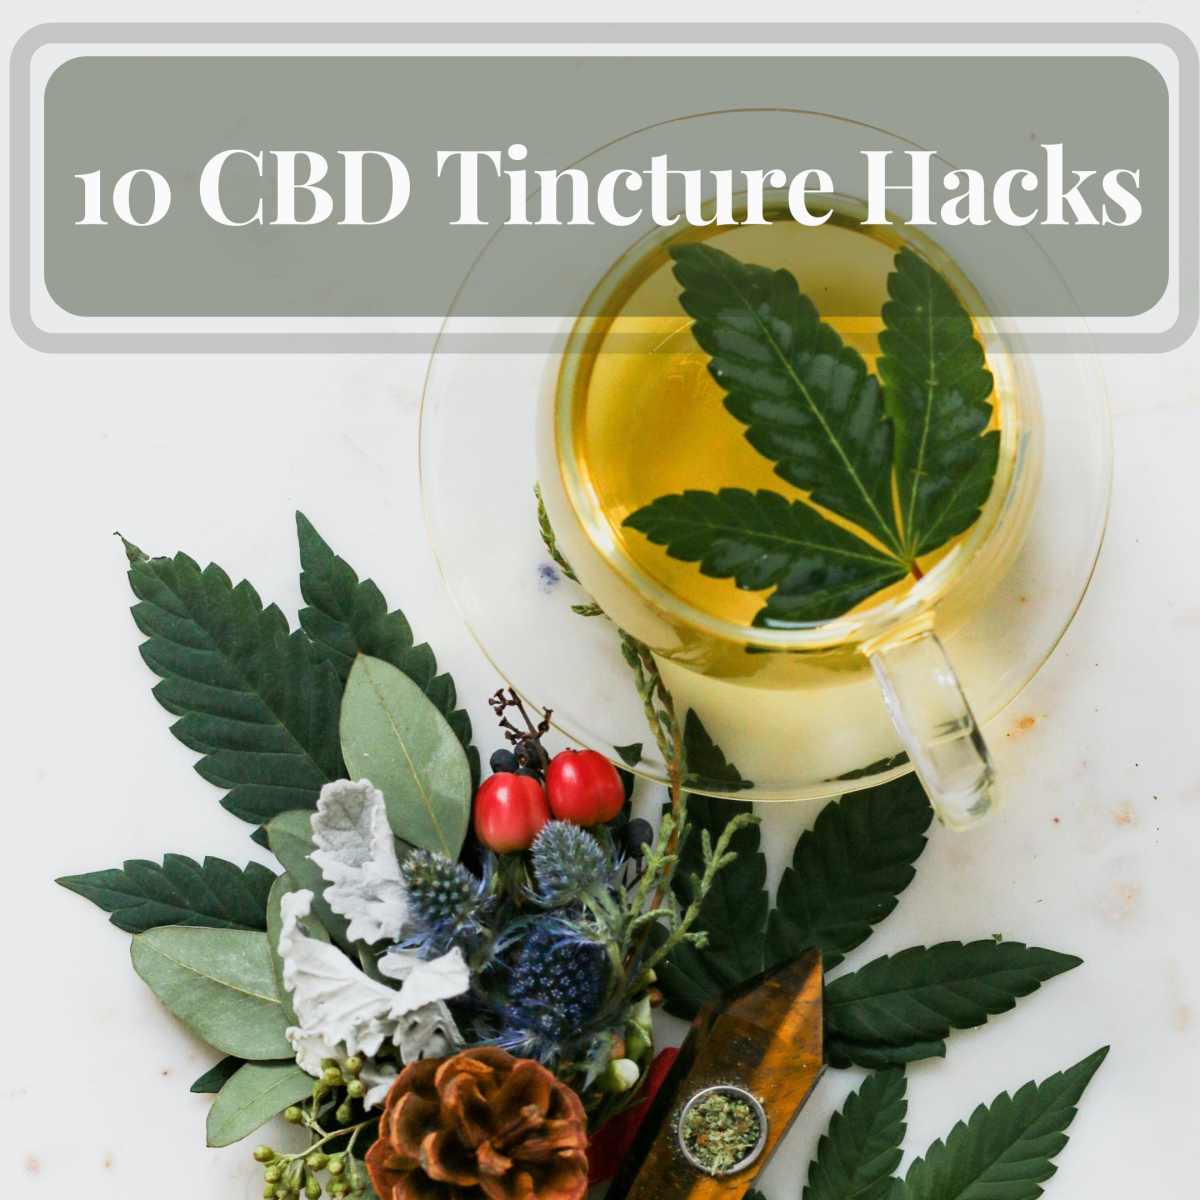 Top 10 CBD Tincture Hacks